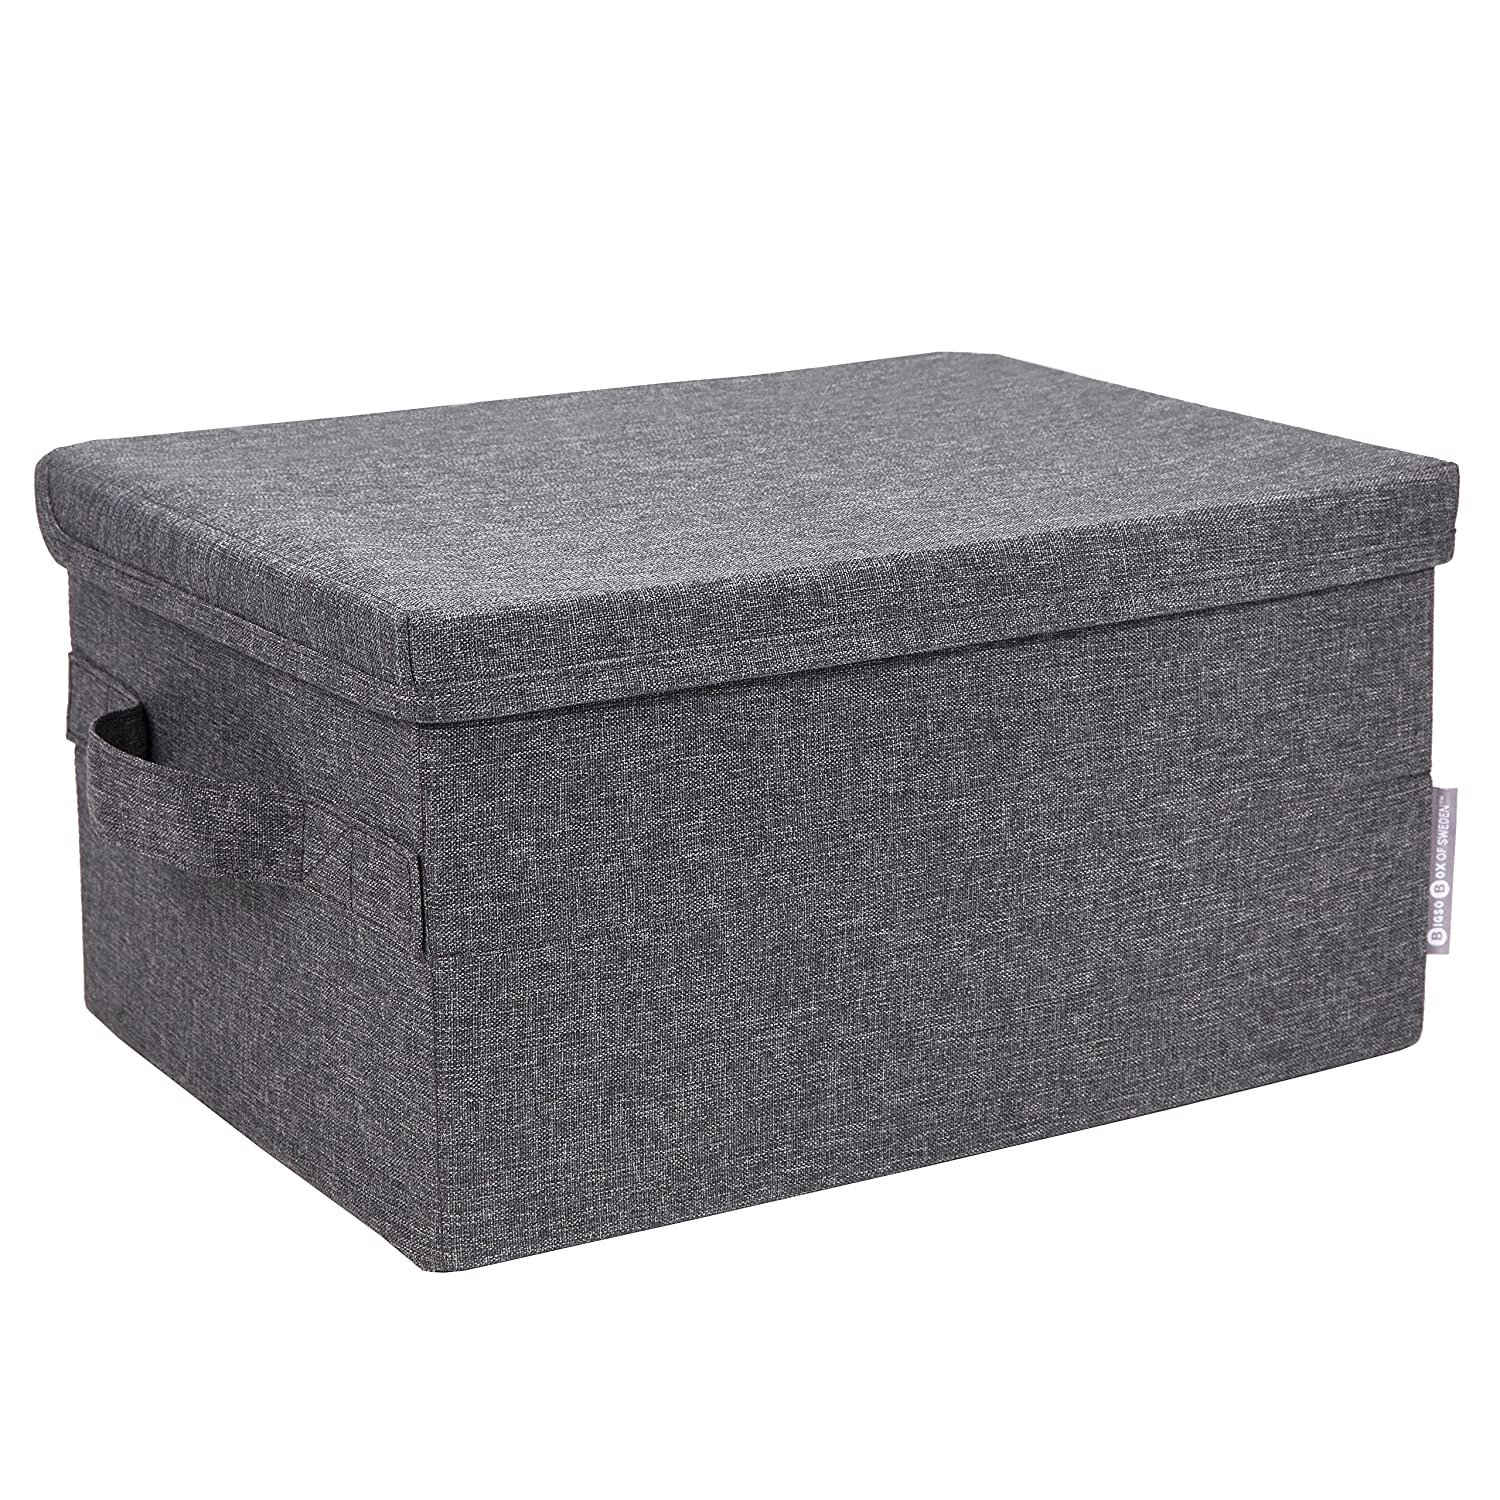 Bigso Soft Storage Box with Lid, Small, Grey 1012